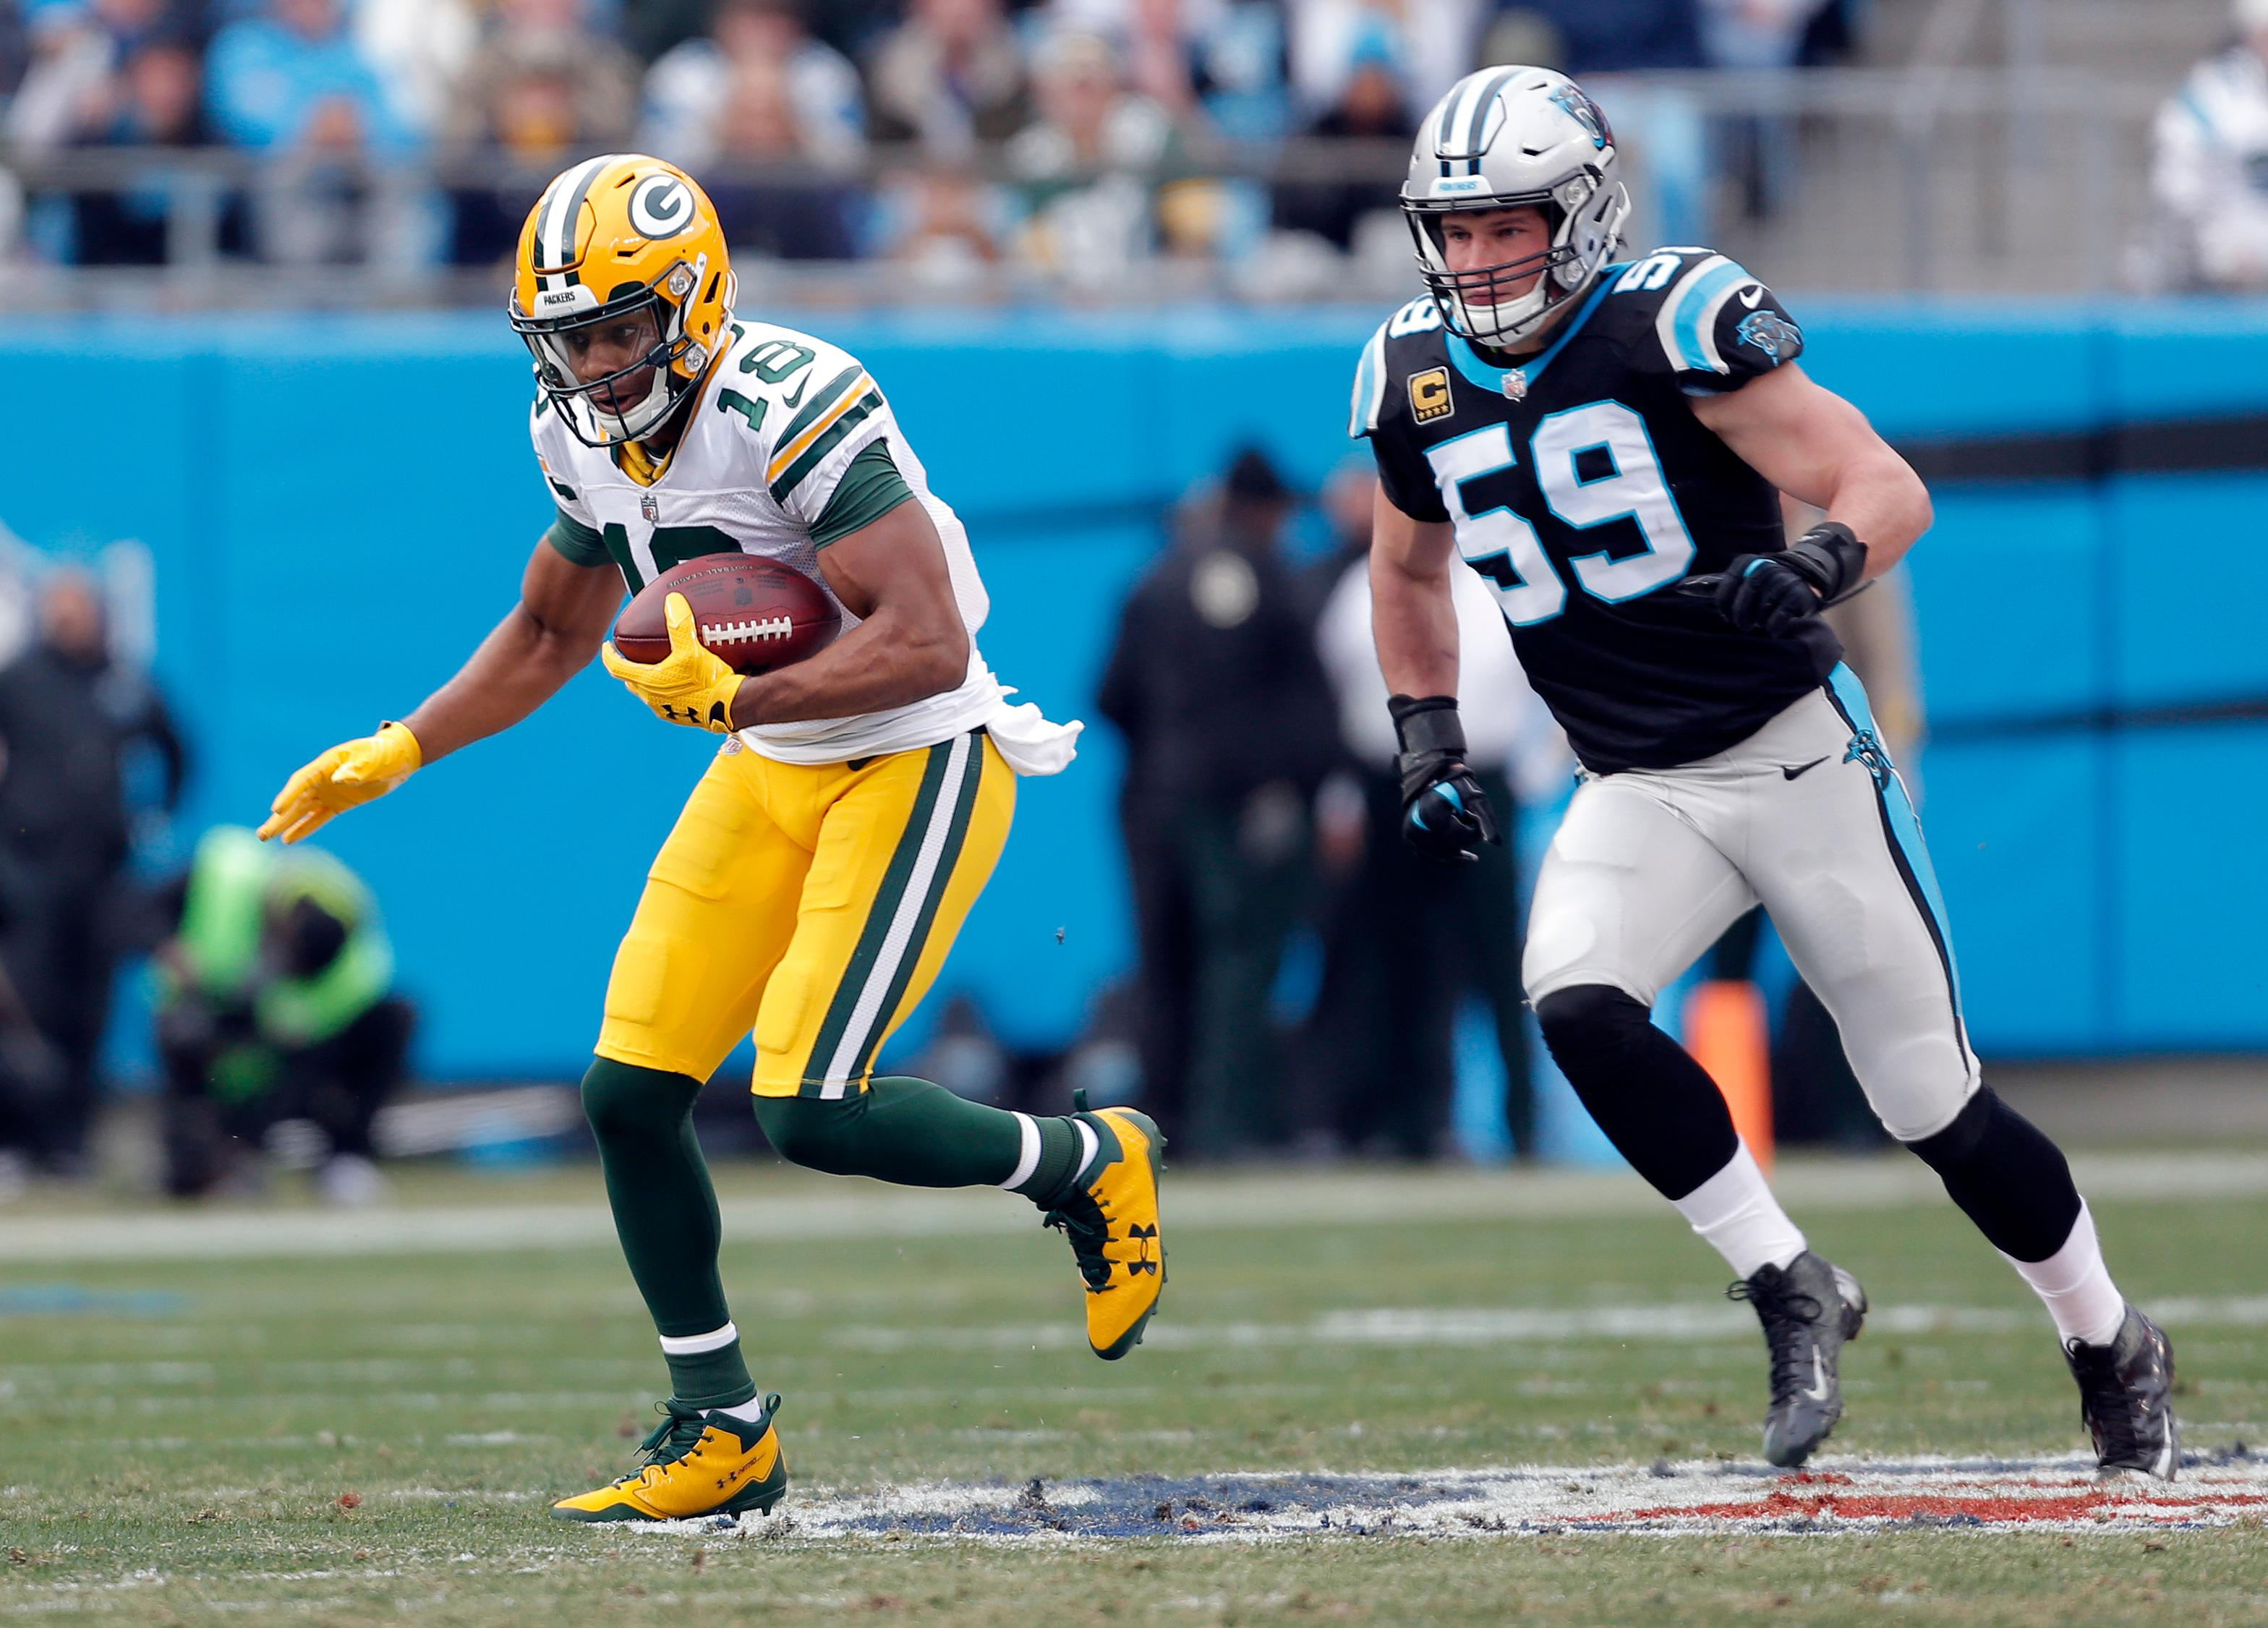 Green Bay Packers' Randall Cobb (18) runs past Carolina Panthers' Luke Kuechly (59) after a catch during the first half of an NFL football game in Charlotte, N.C., Sunday, Dec. 17, 2017. (AP Photo/Bob Leverone)